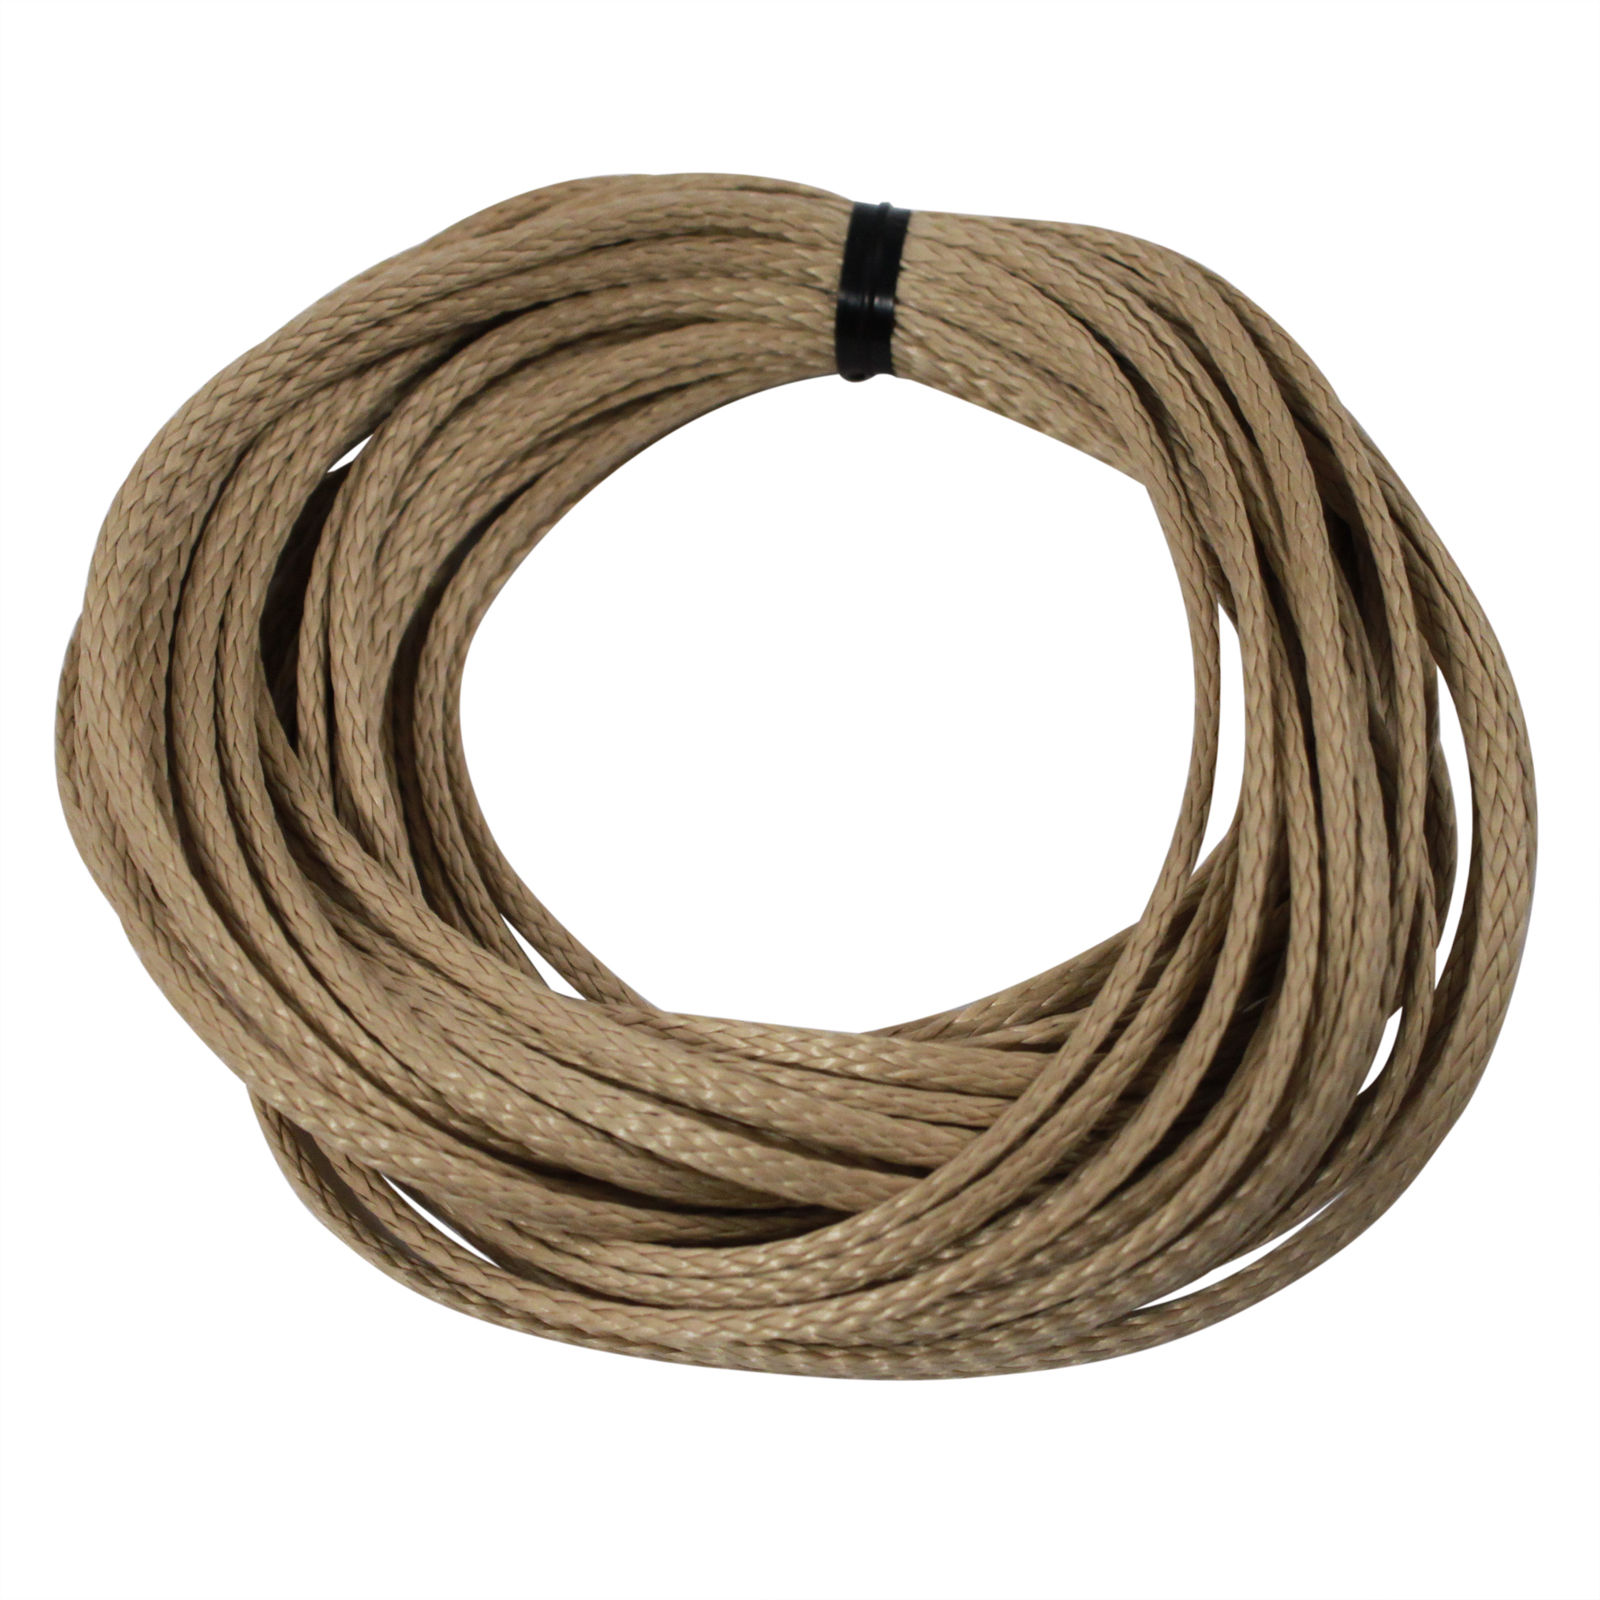 ASR Outdoor Braided Technora 950lb Survival Rope - Natural (Many Lengths)